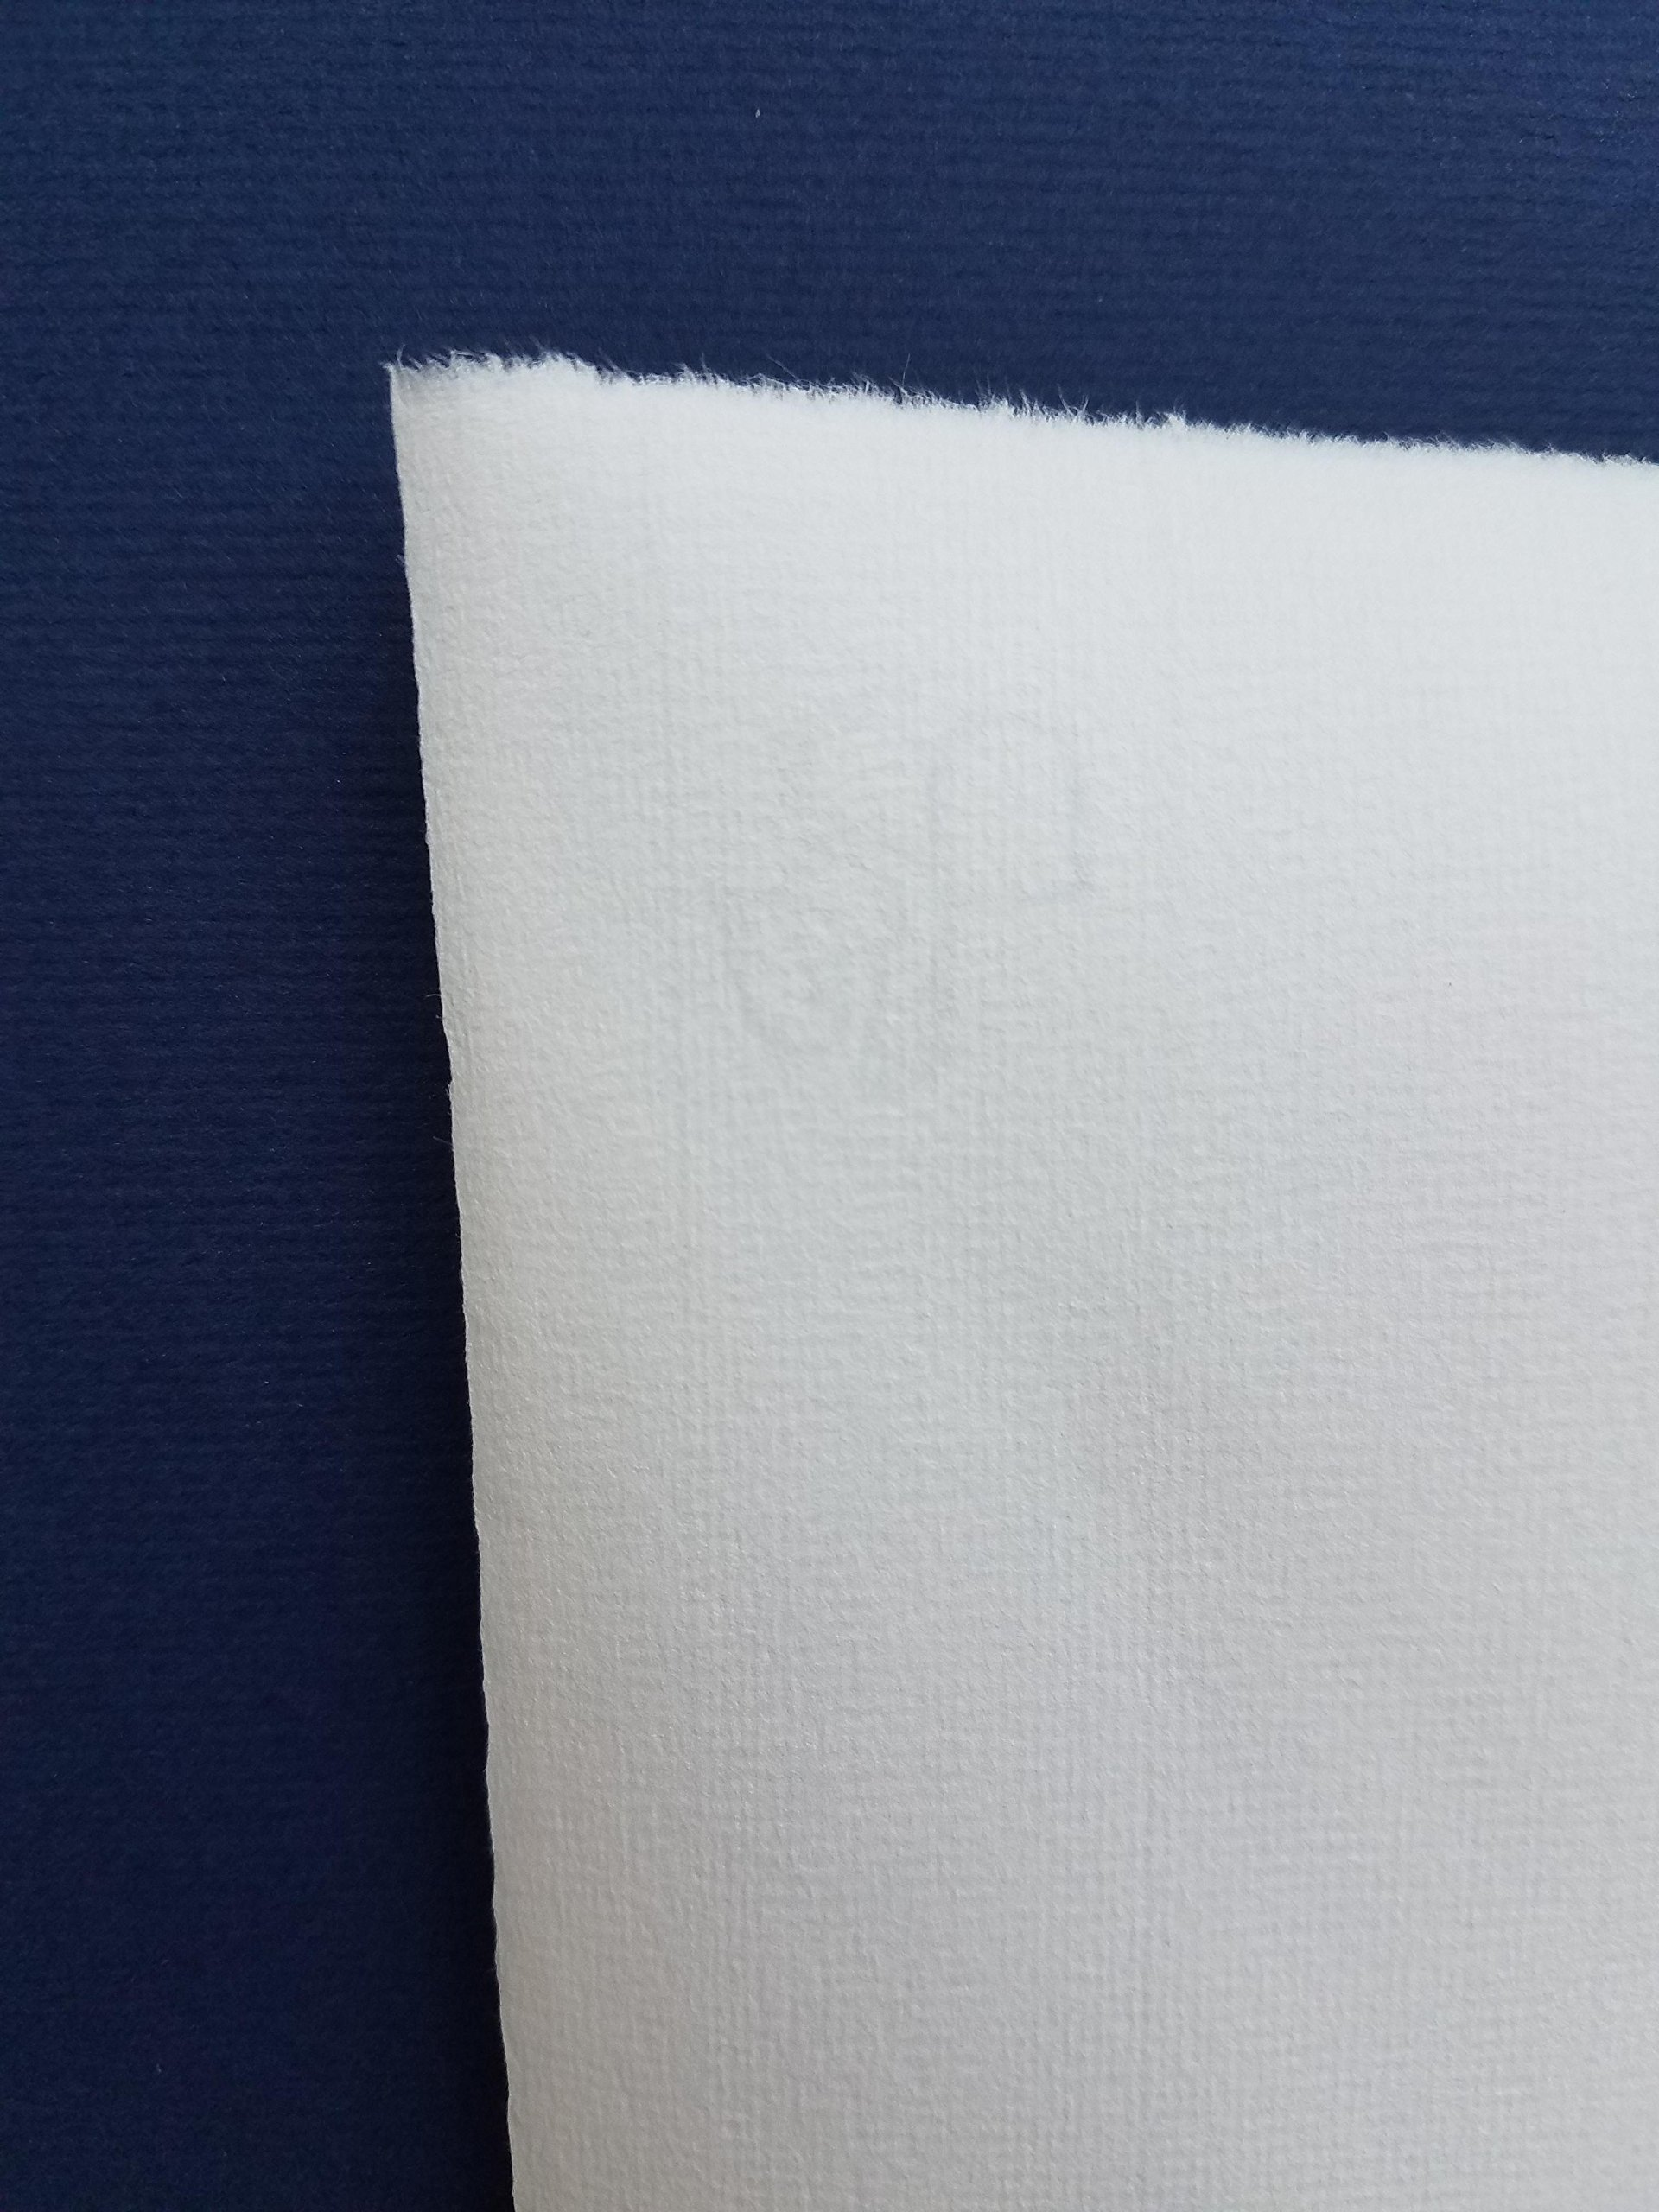 Hahnemuhle Ingres Paper, Bright White 130, 19'' X 25'', 100 gsm (25 Sheet Package)